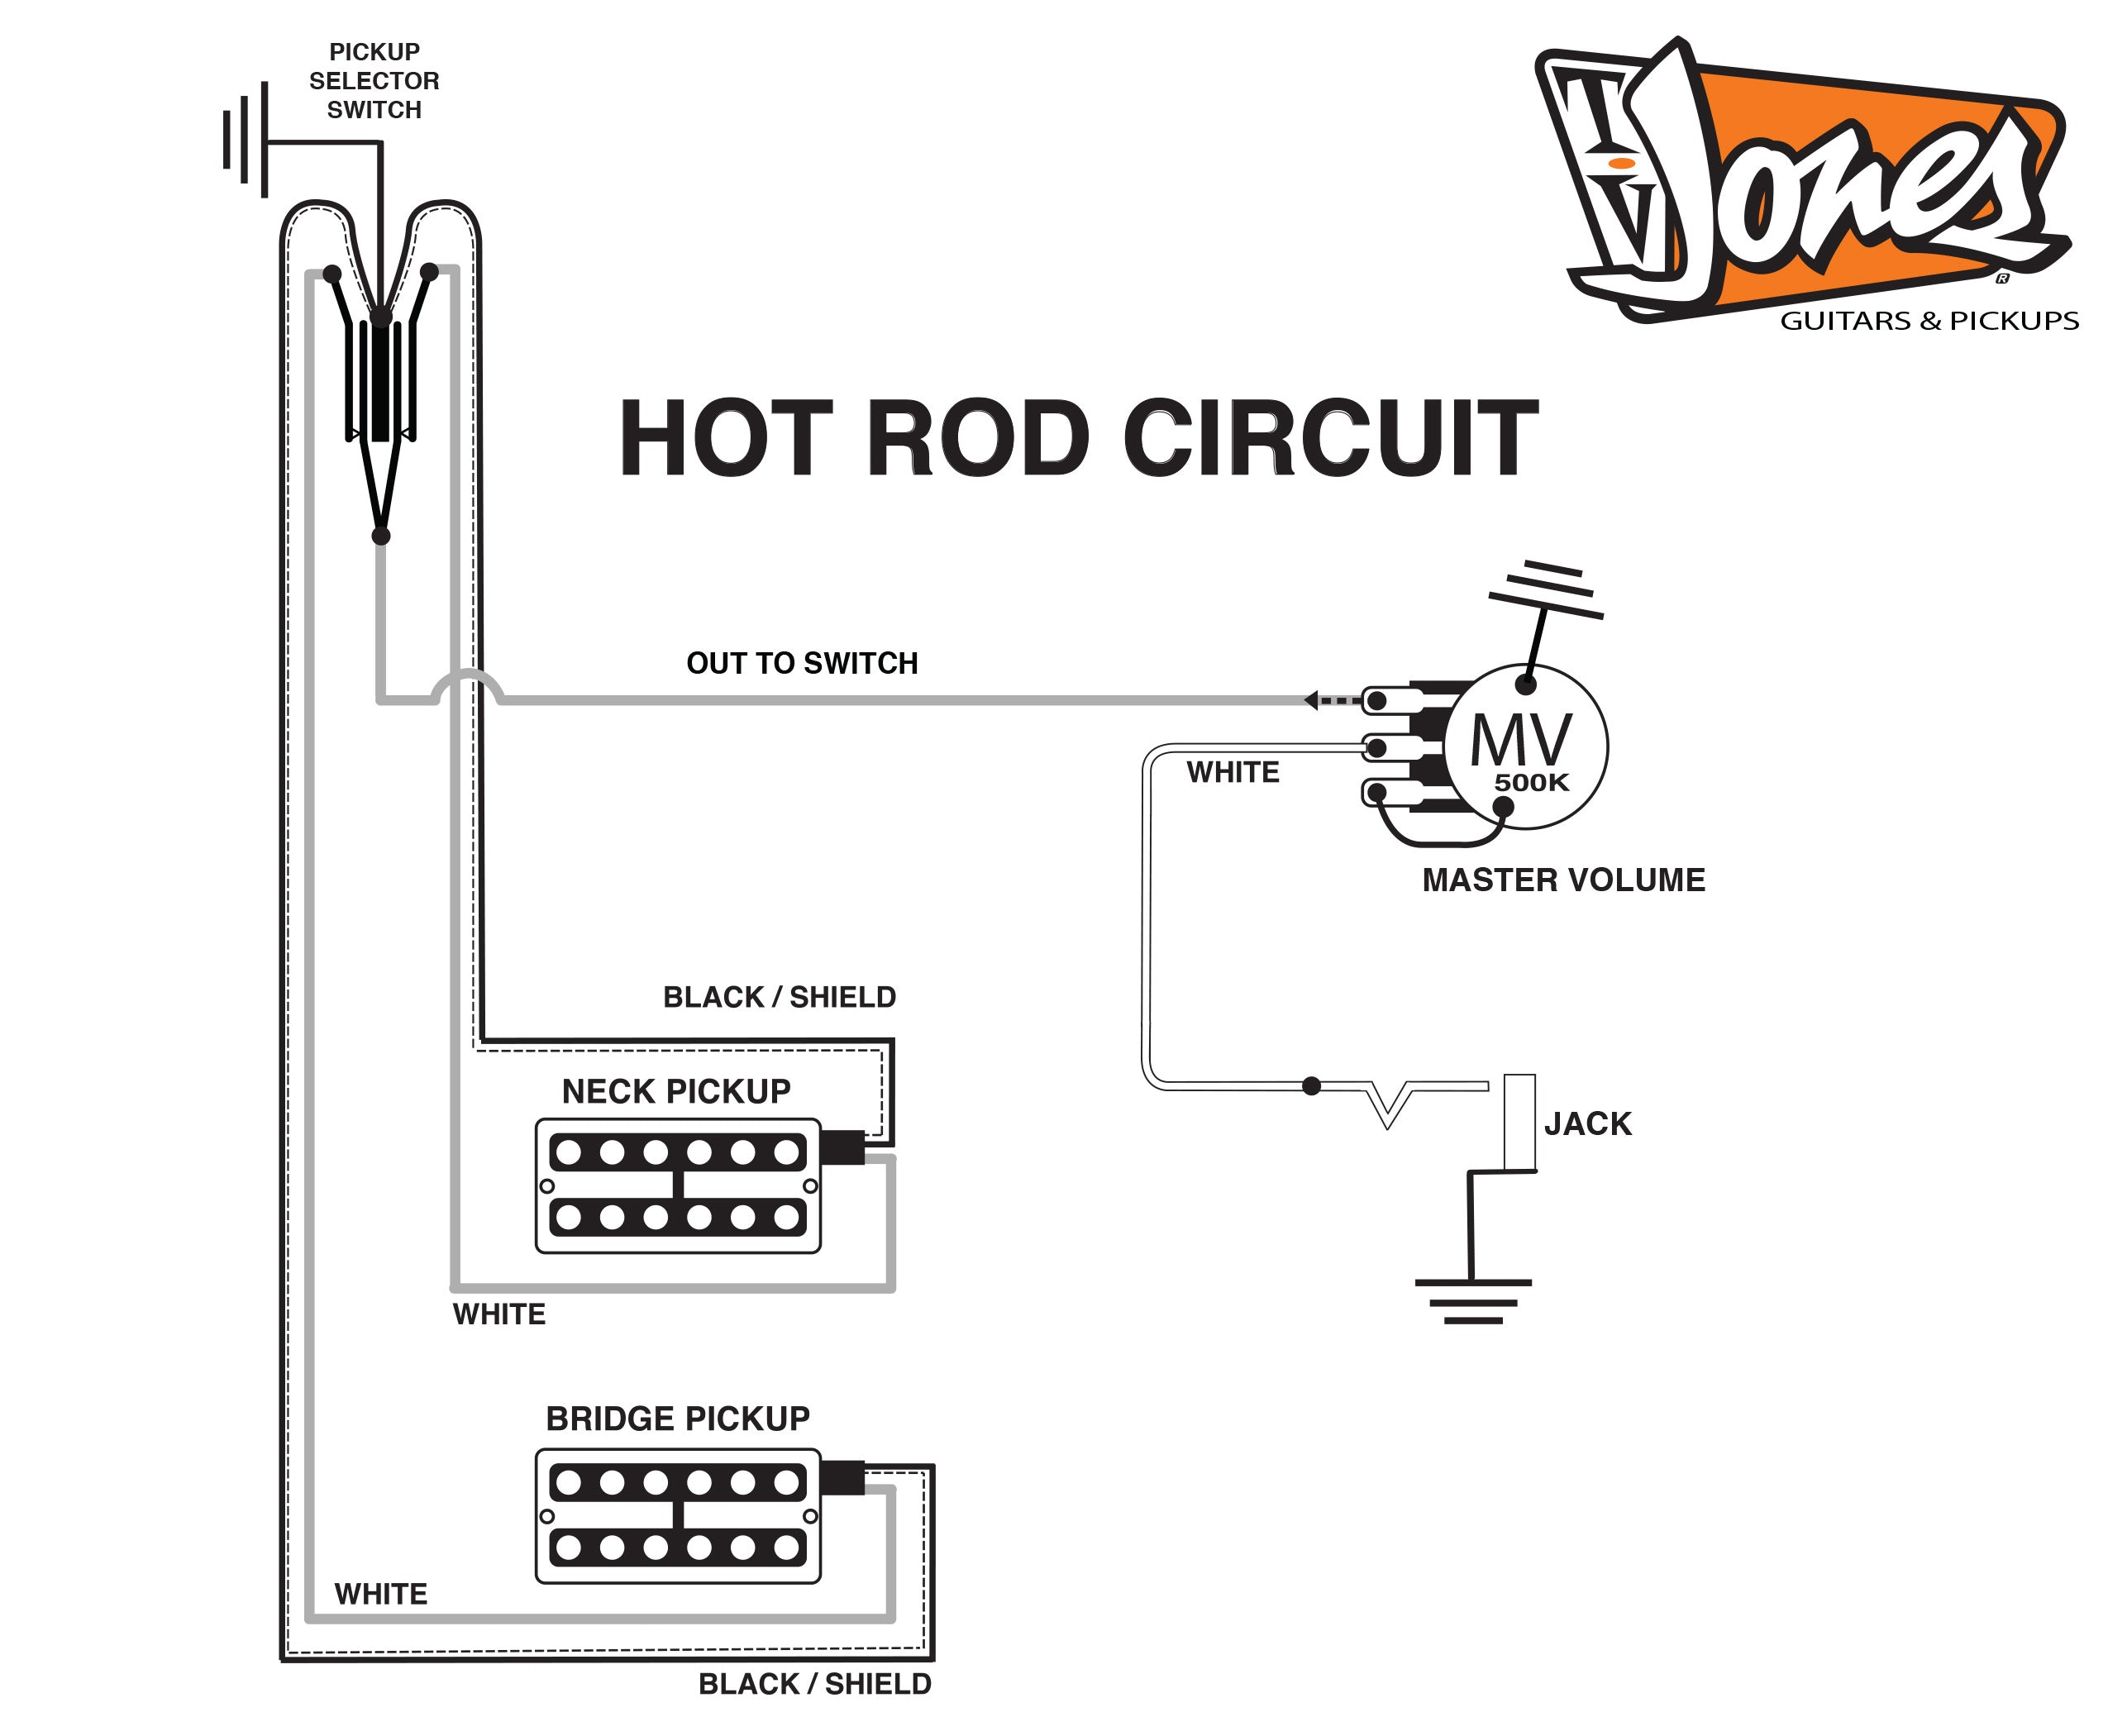 mud switch broke  convert to hot rod wiring    general